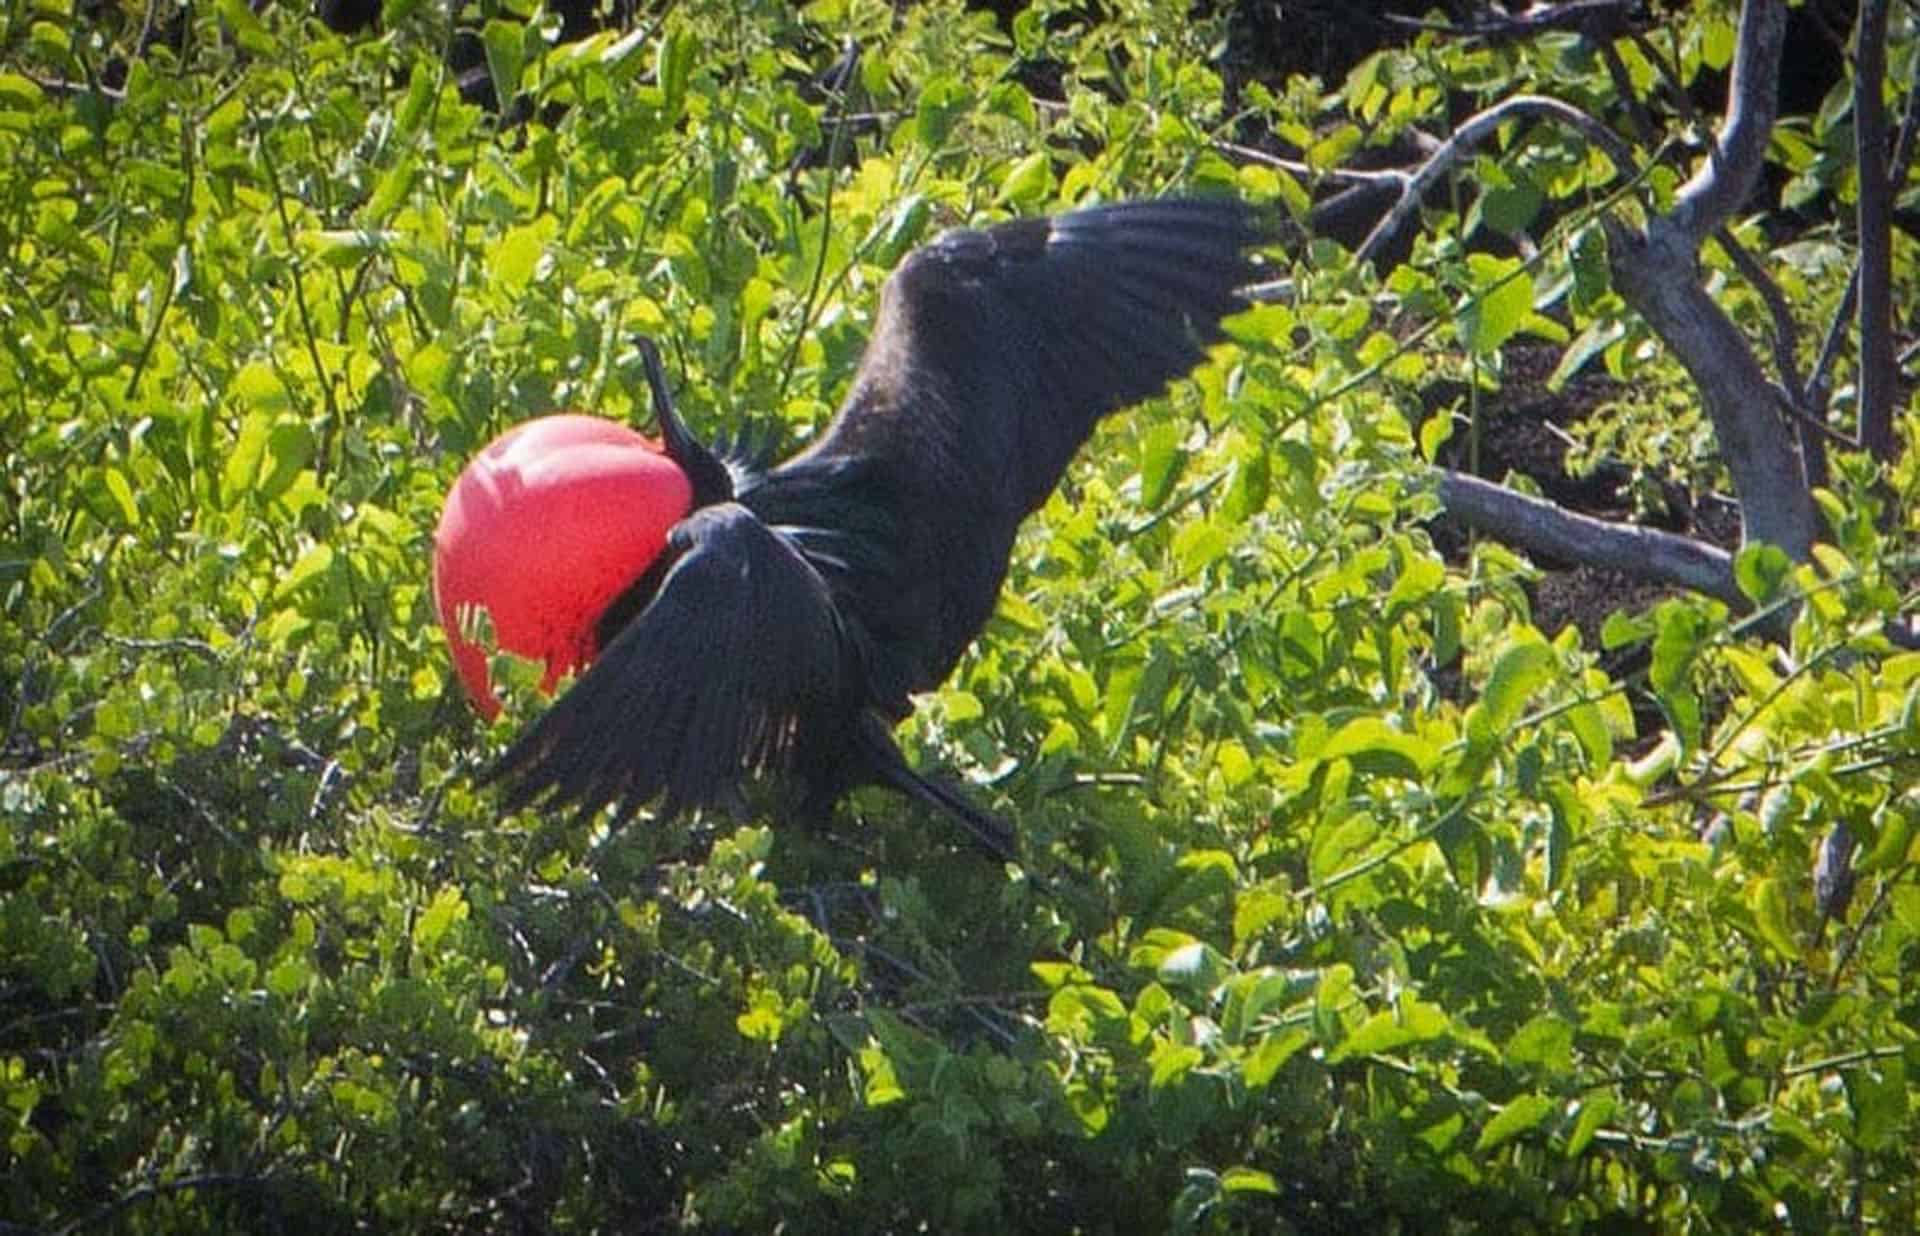 Mating ritual of the Frigate Bird - Pumping out chest